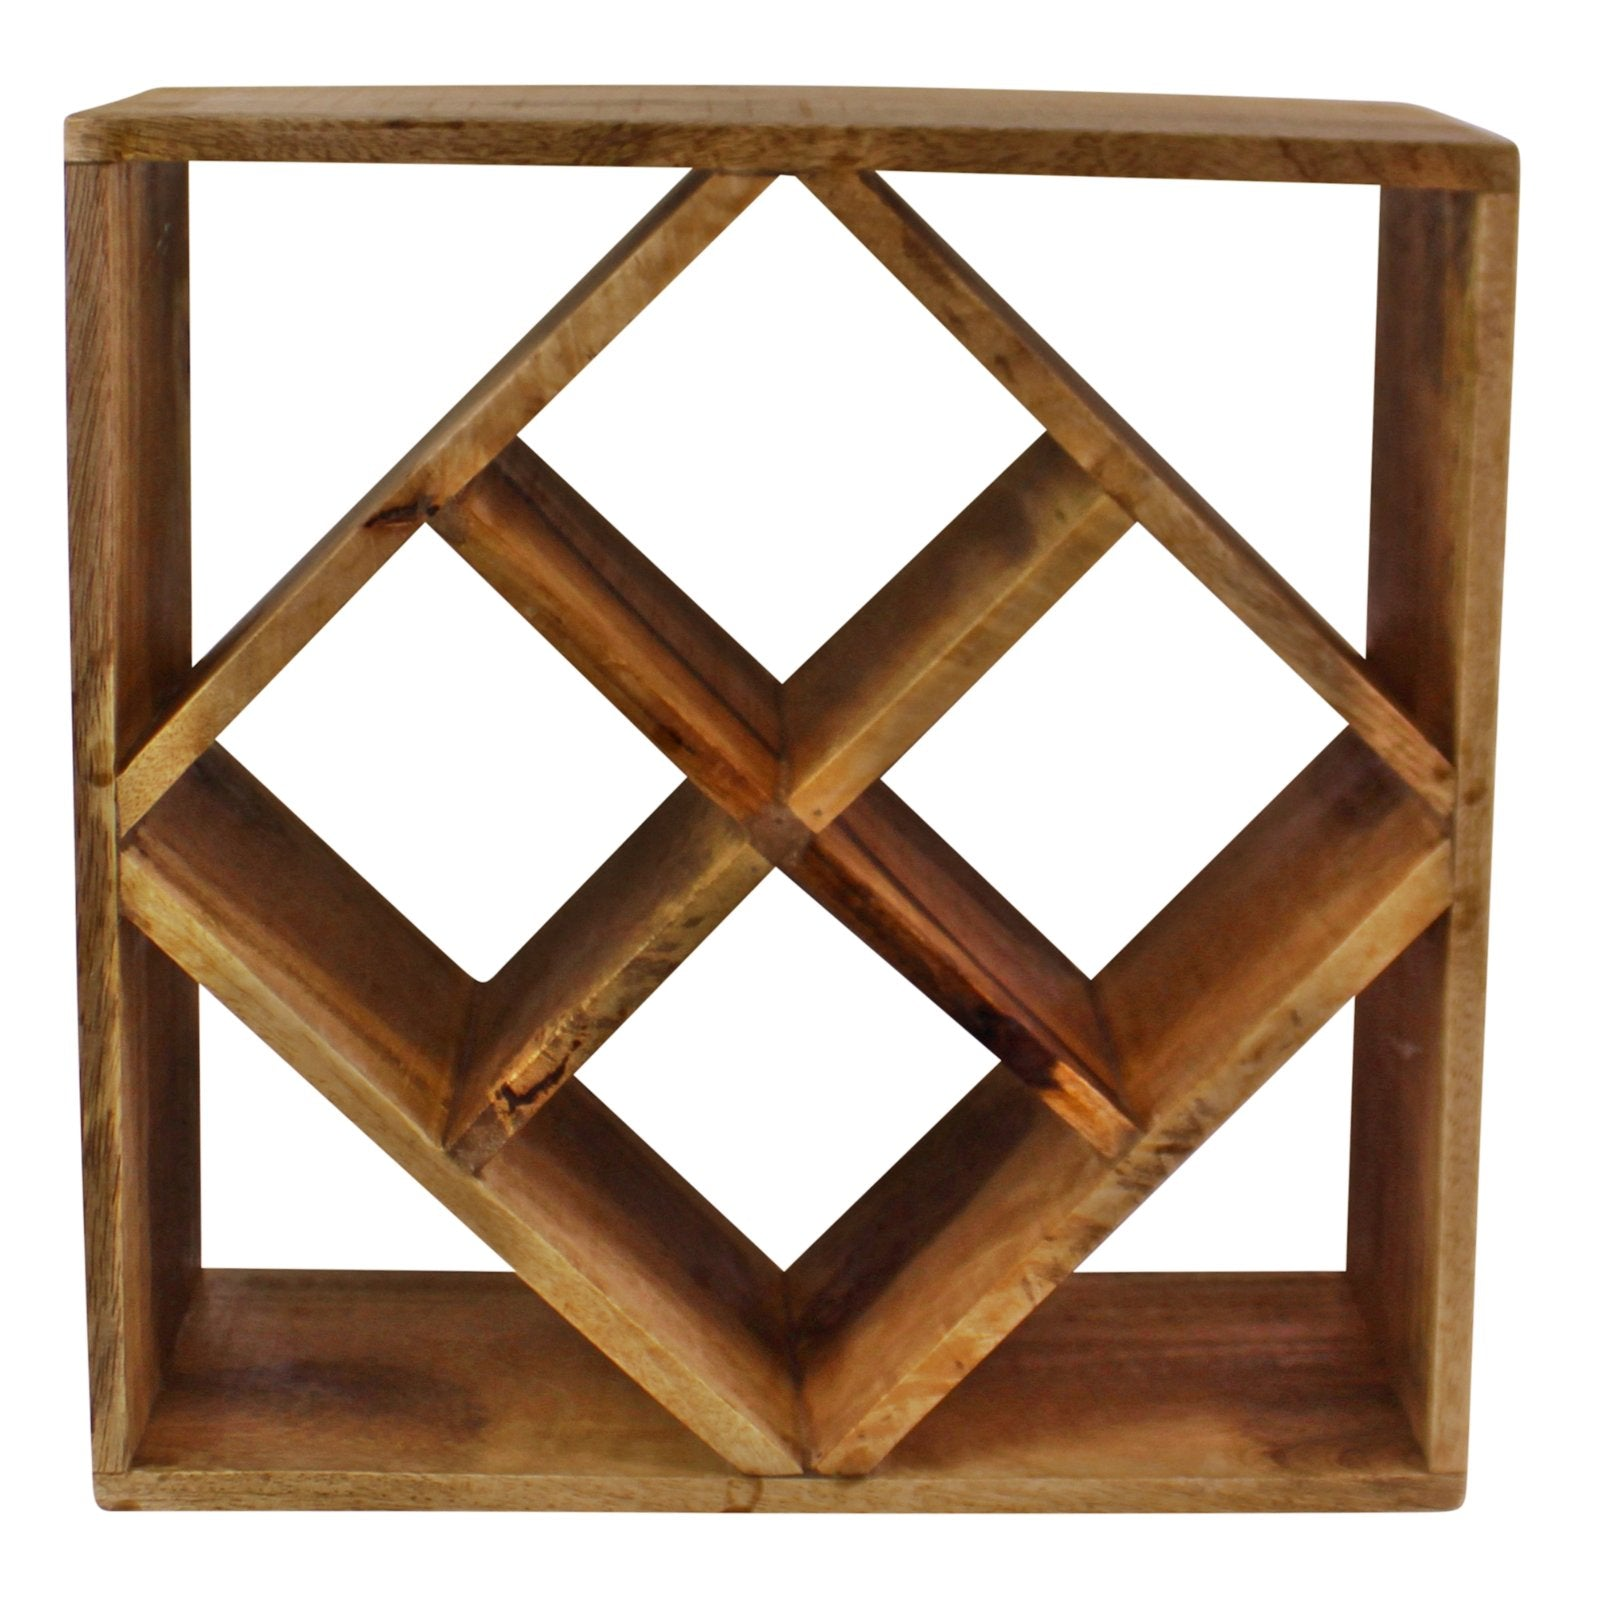 Small Mango Wood Wine Rack, Holds 4 Bottles, Barware by Gifts24-7